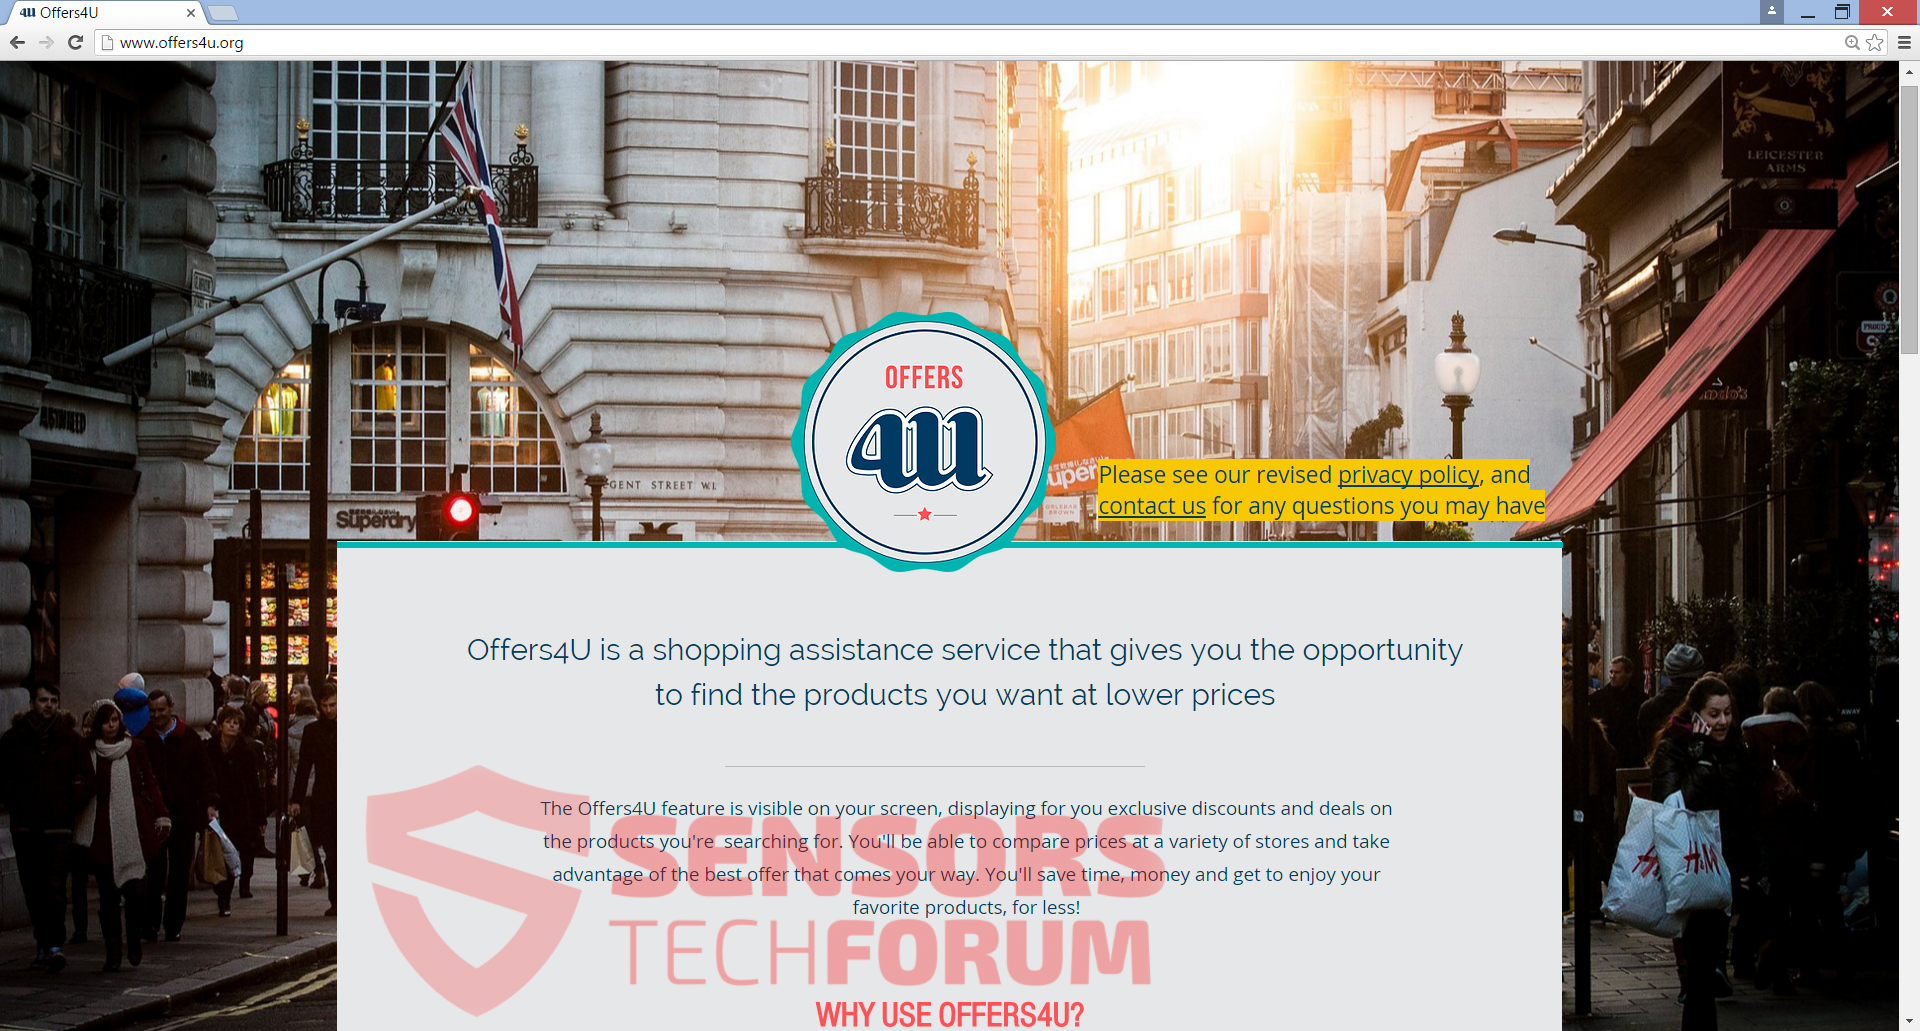 SensorsTechForum-offers4u-offers-4u-official-site-main-page